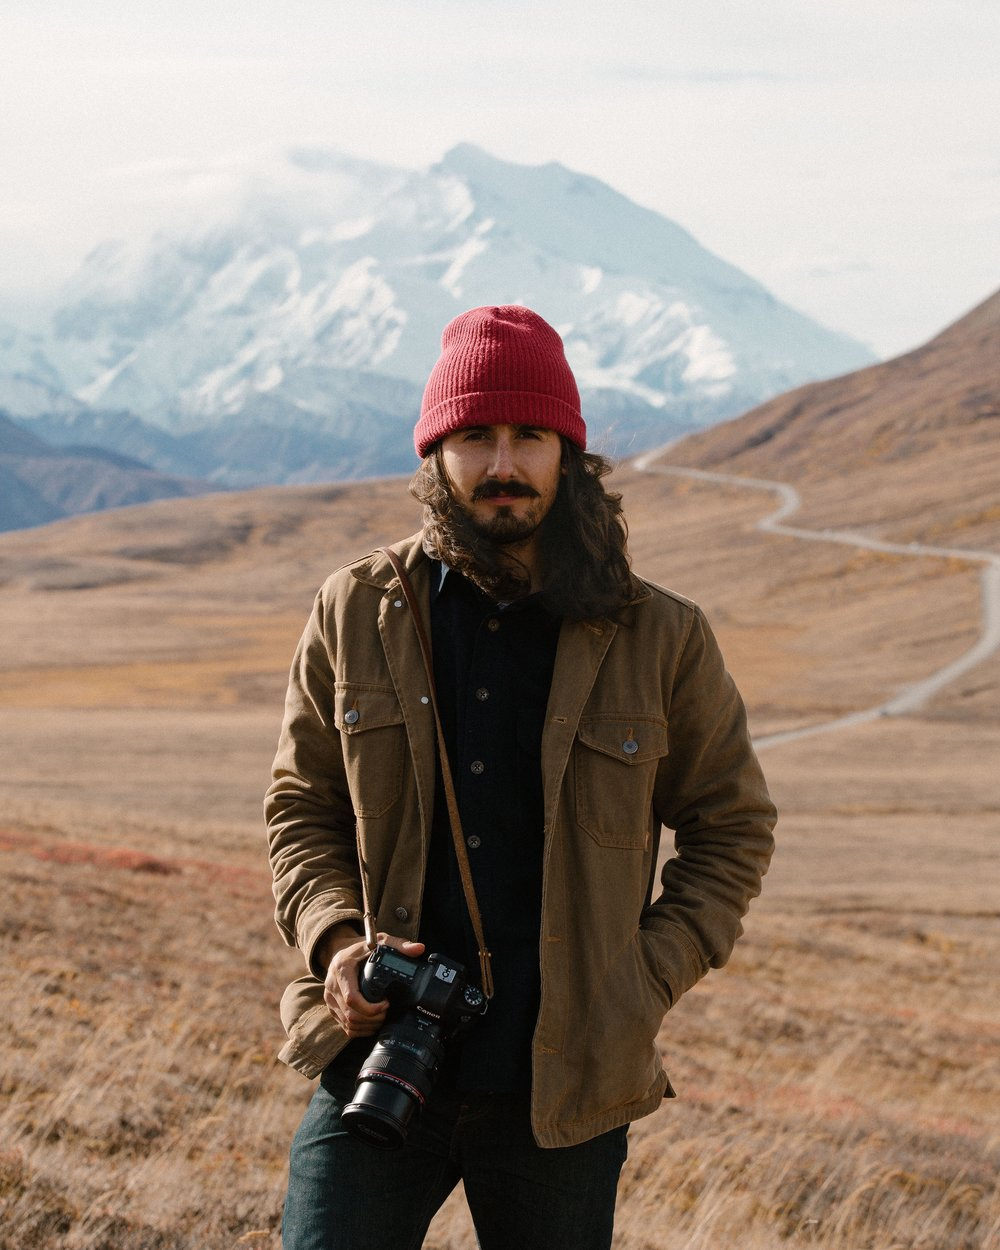 Rodrigo Trevino is a landscape photographer who is inspired by the roads less traveled. He tends to avoid the crowds and focuses his photography towards the lesser known lakes, trails and mountains. His photographs can be characterized by his desire to travel and his time spent in the great outdoors.